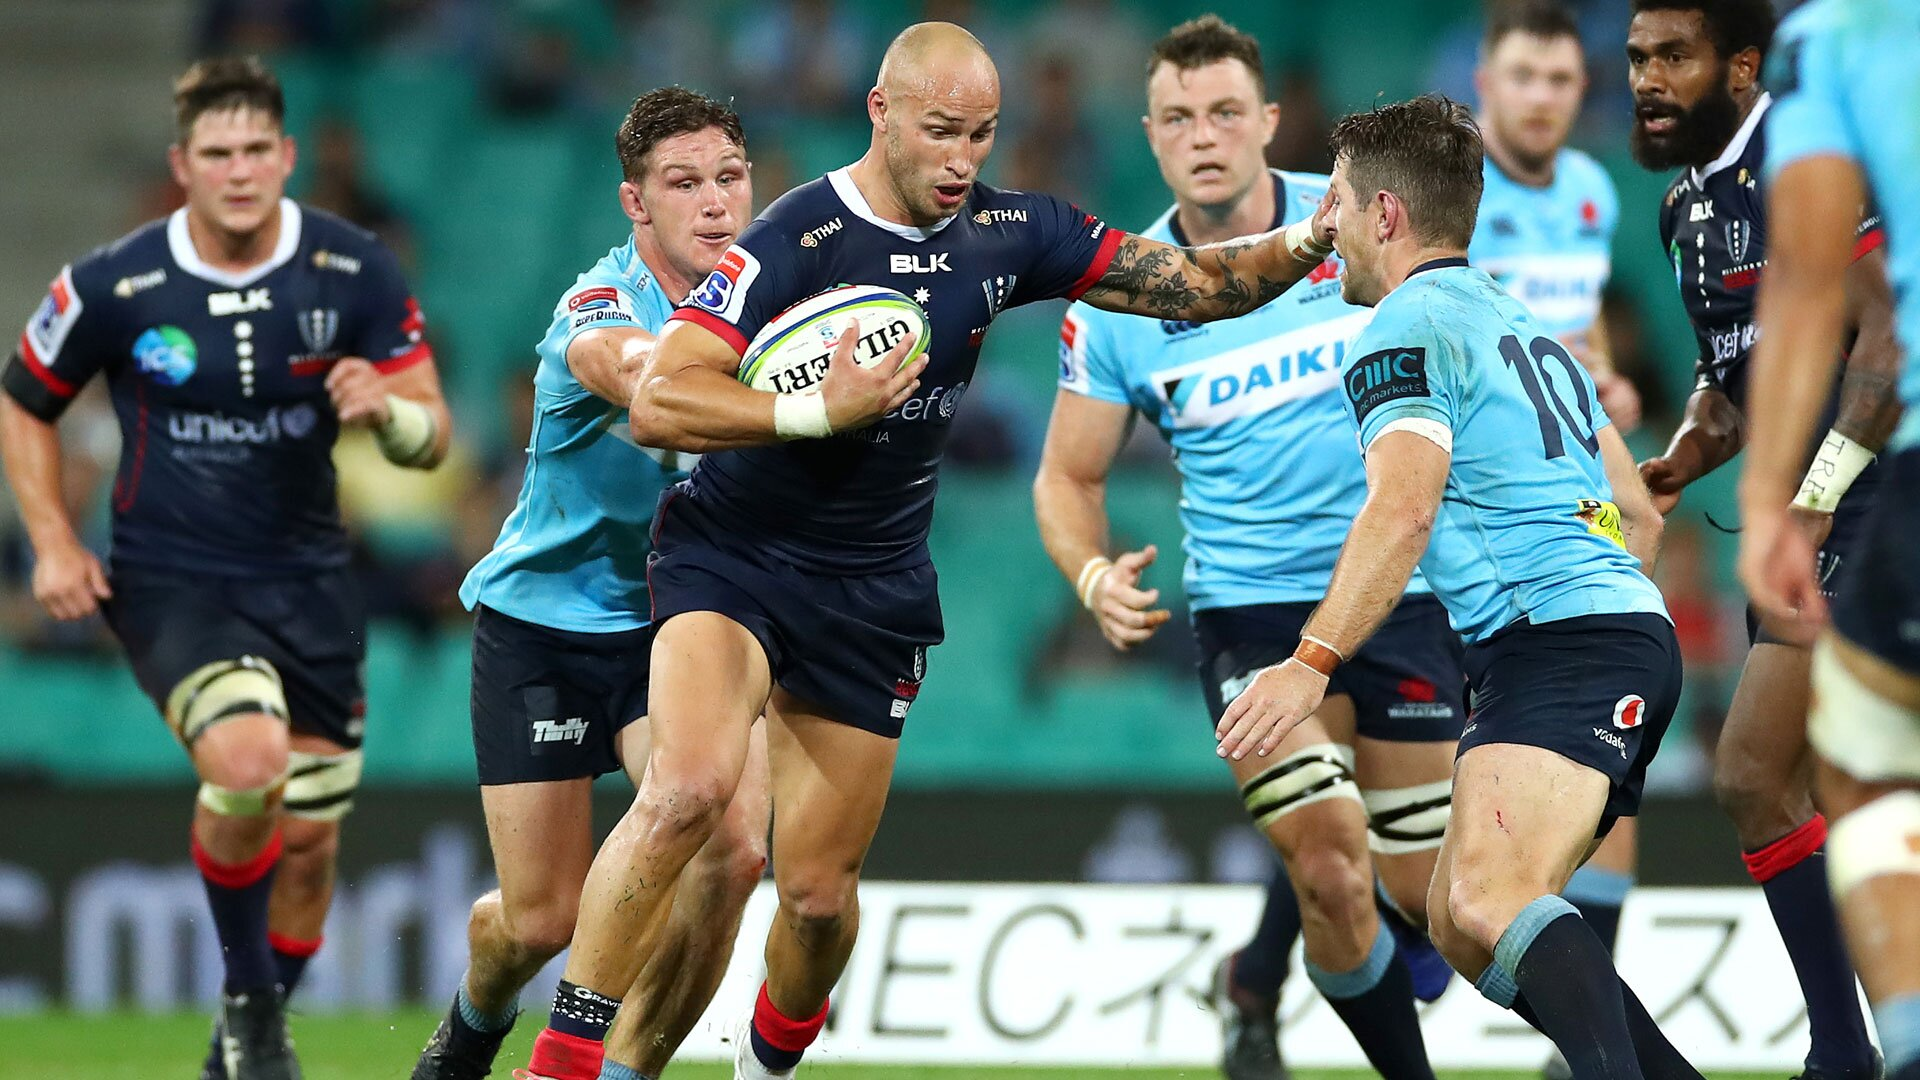 Two wins from 17 games makes for tough reading for Rebels fans ahead of Friday's match